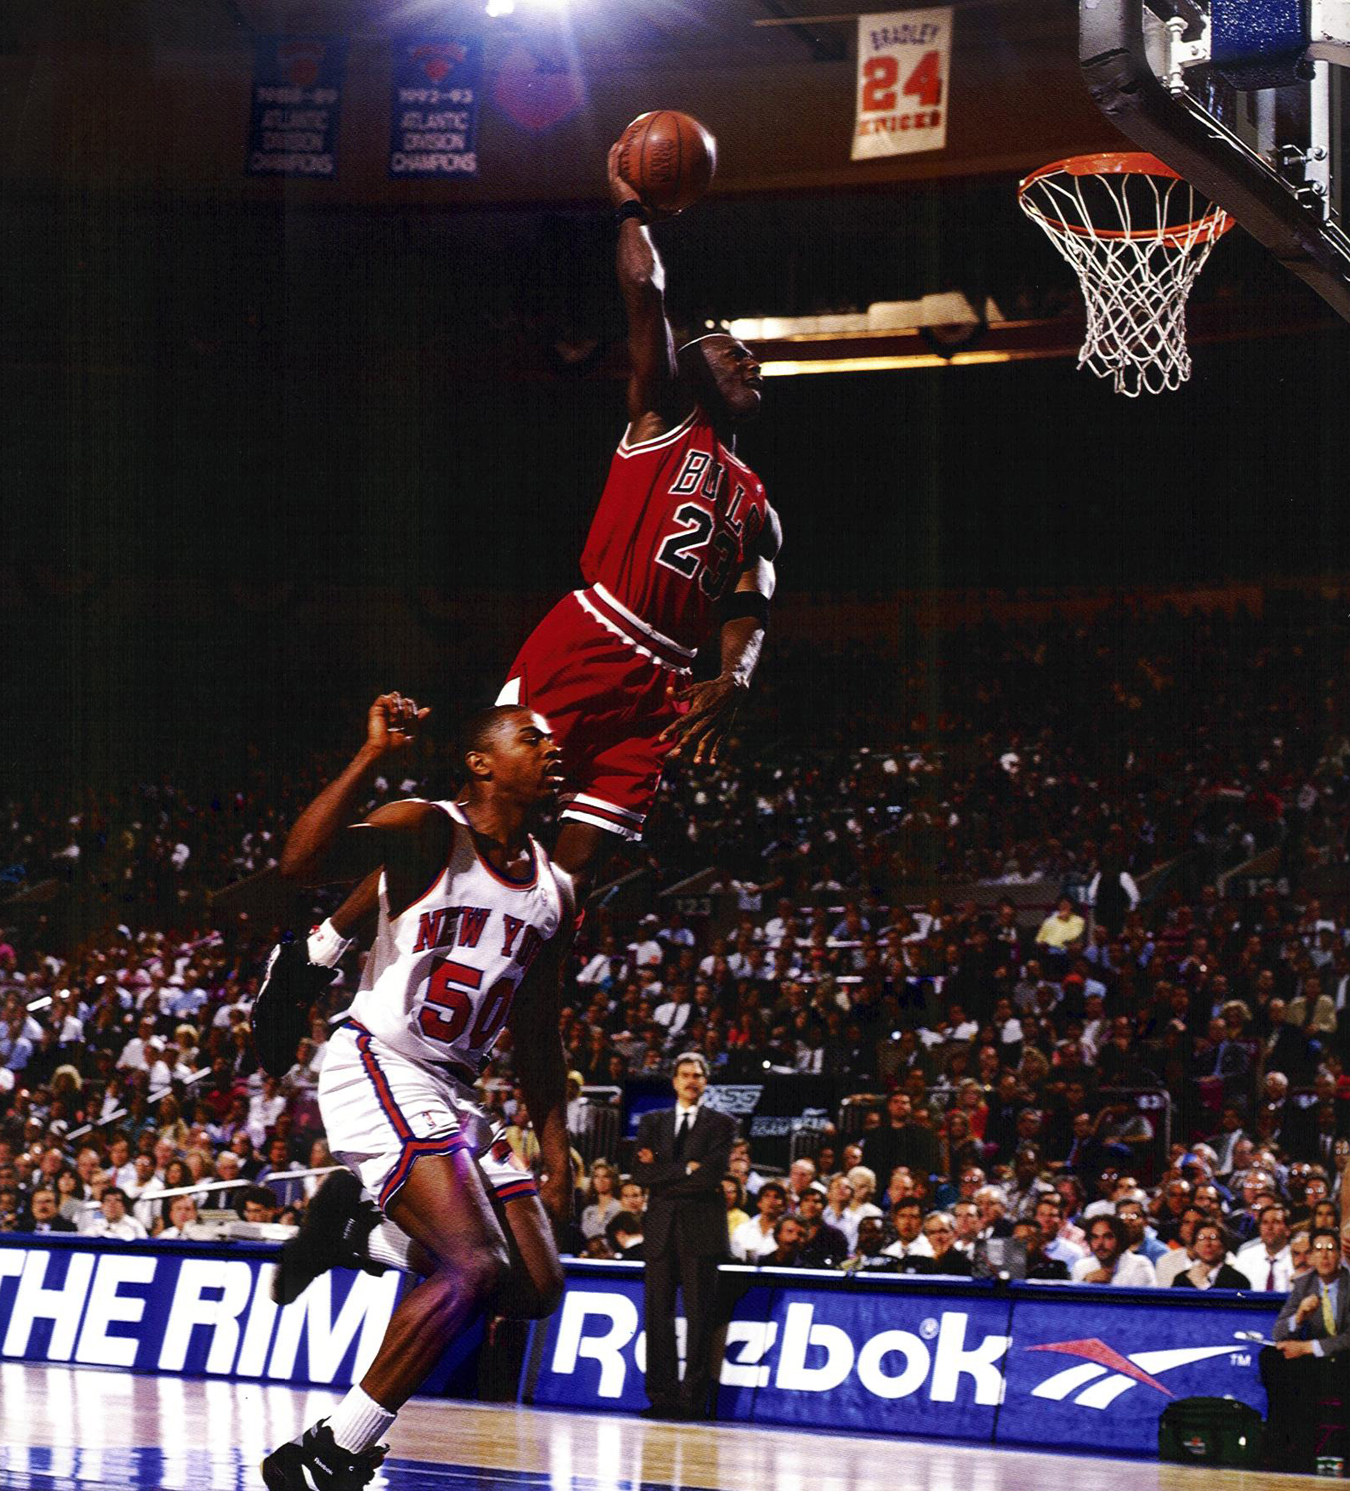 Knight Basketball Player Wallpaper: Michael Jordan Dunk Wallpaper